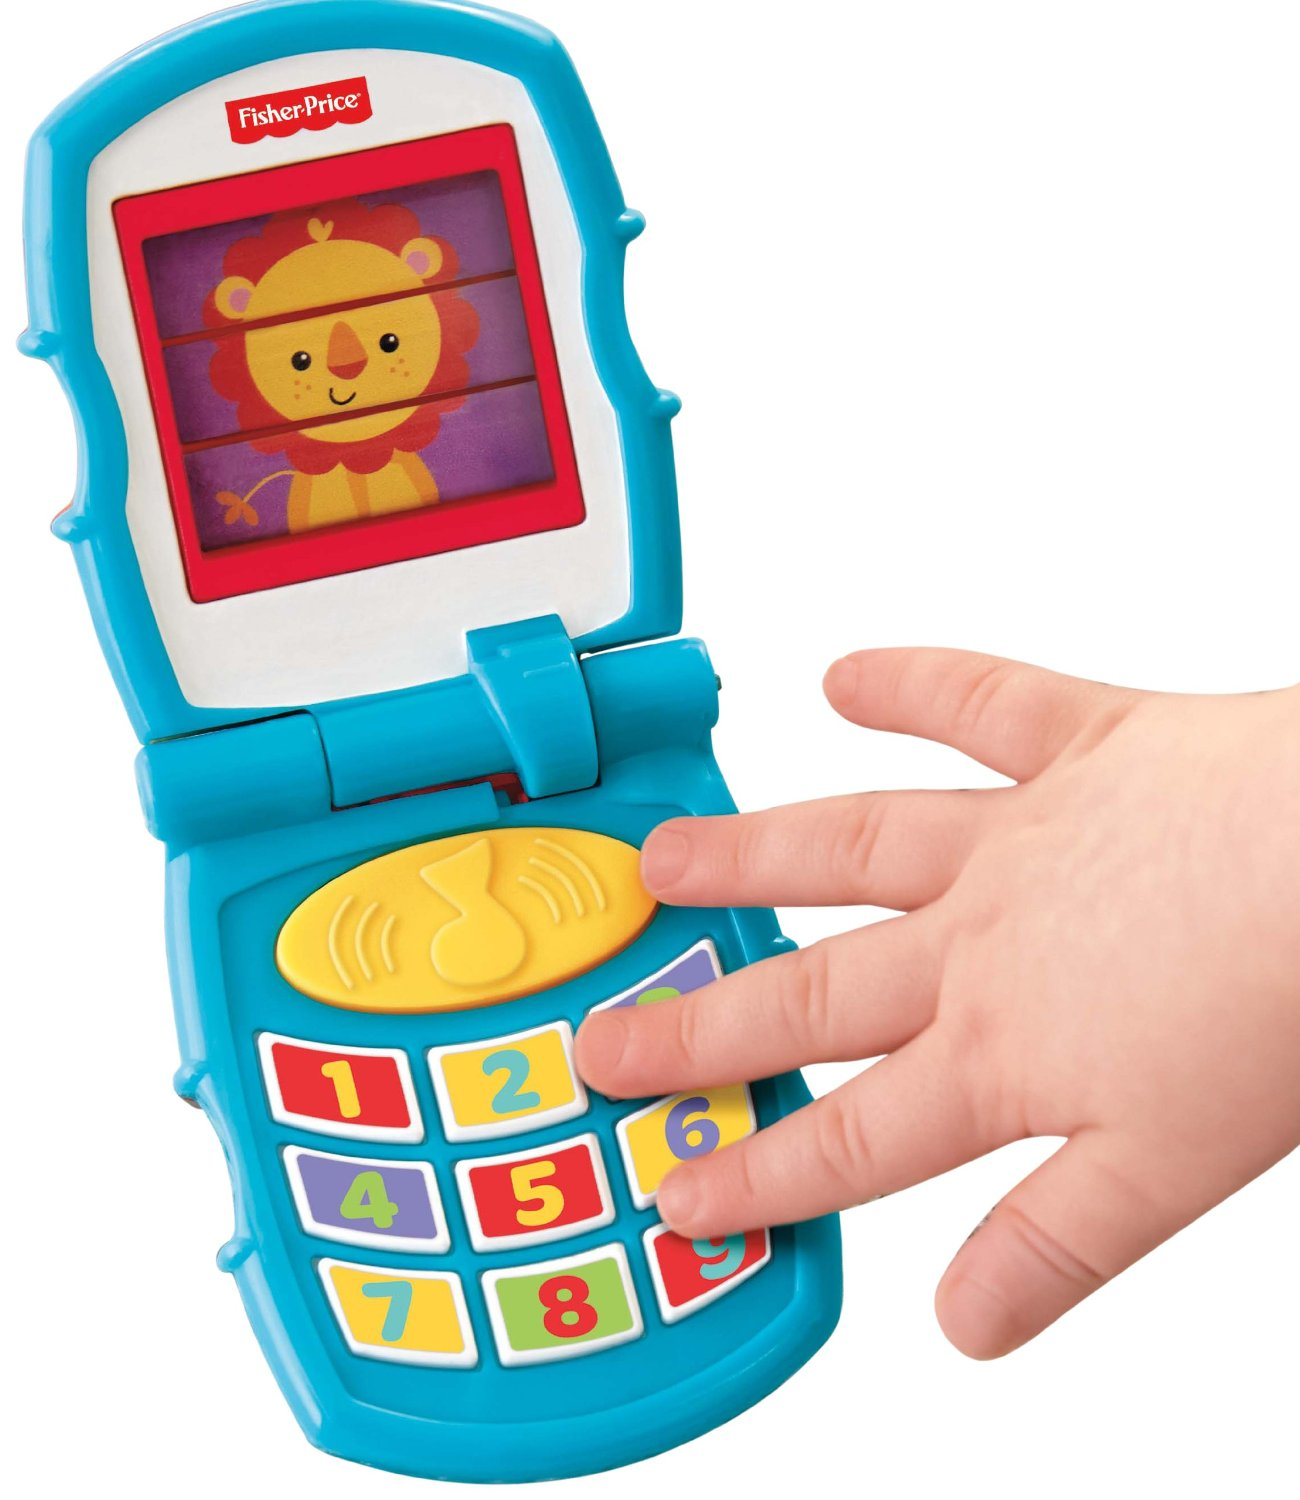 Peek-a-Boo Play Phone